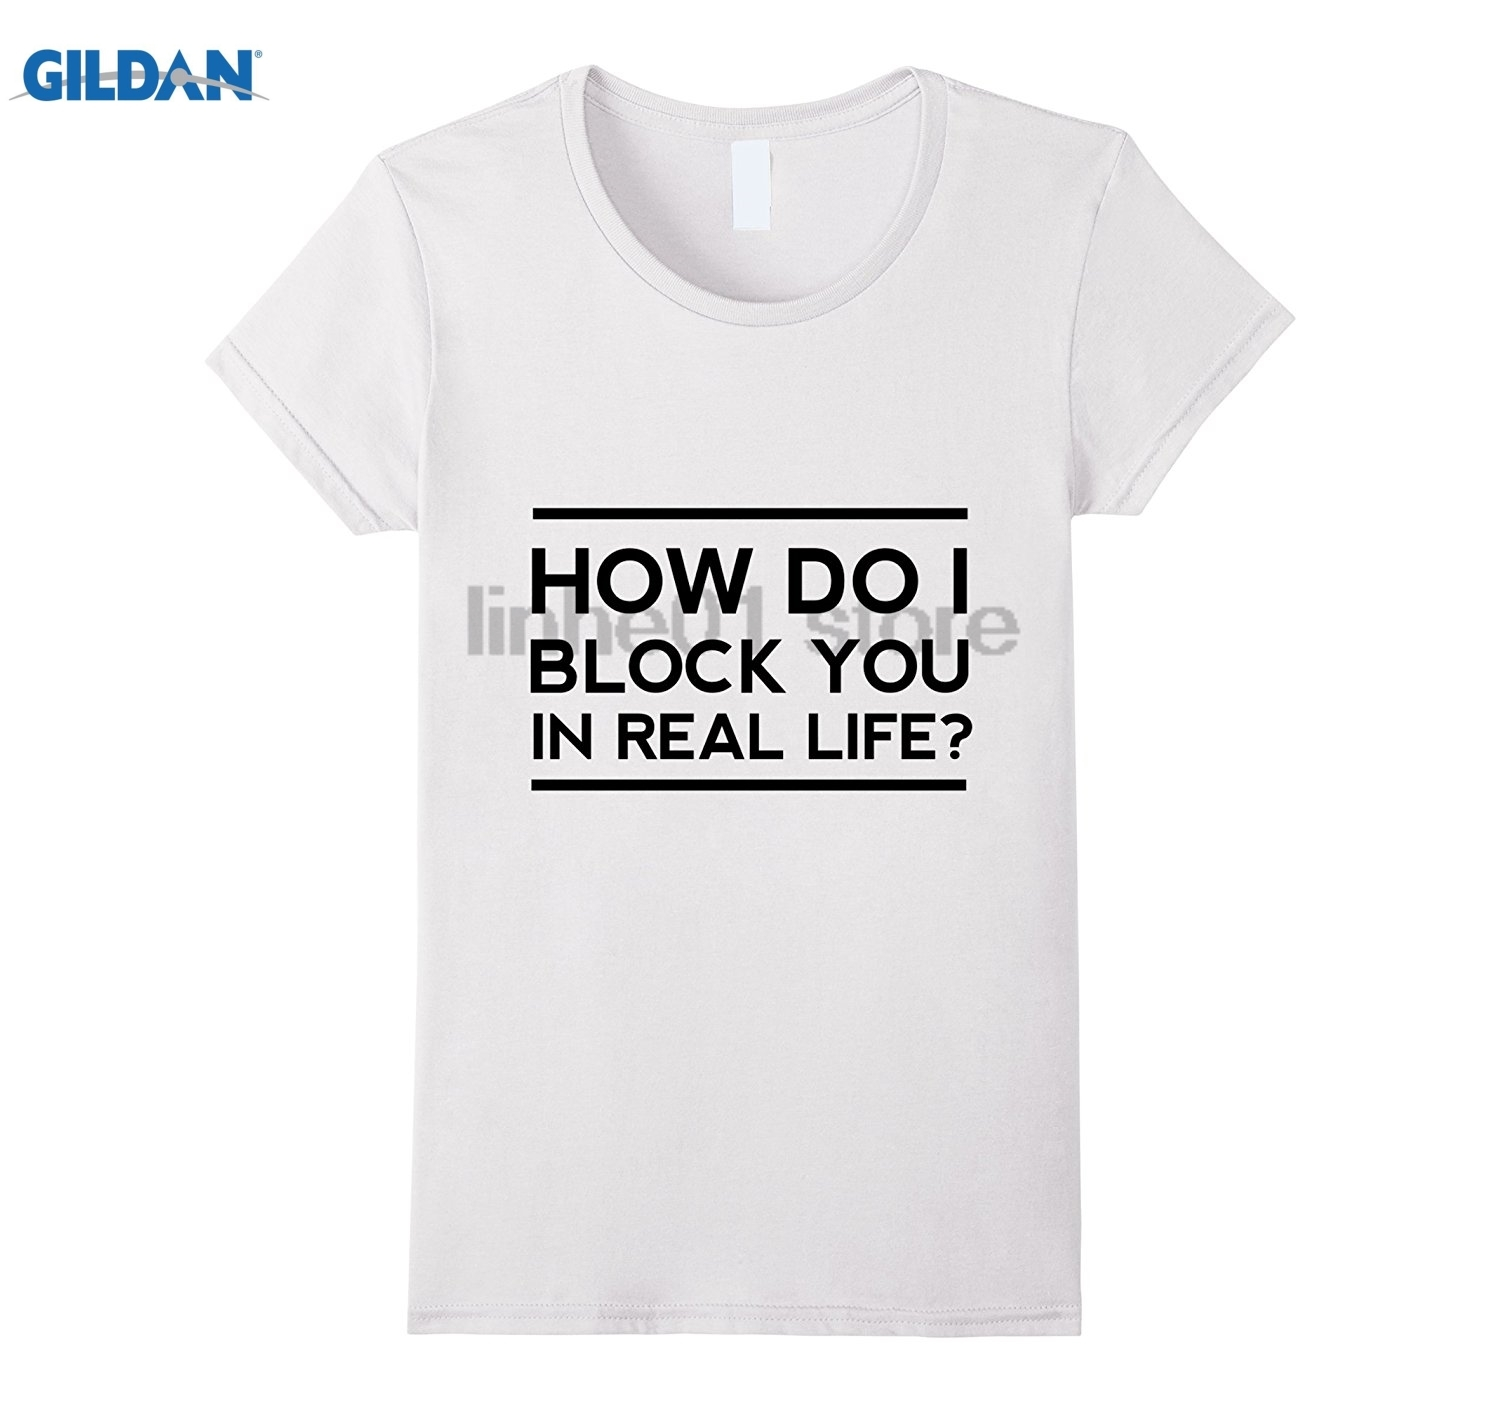 GILDAN How do I block you in real life Tshirt glasses Womens T-shirt Dress female T-shirt